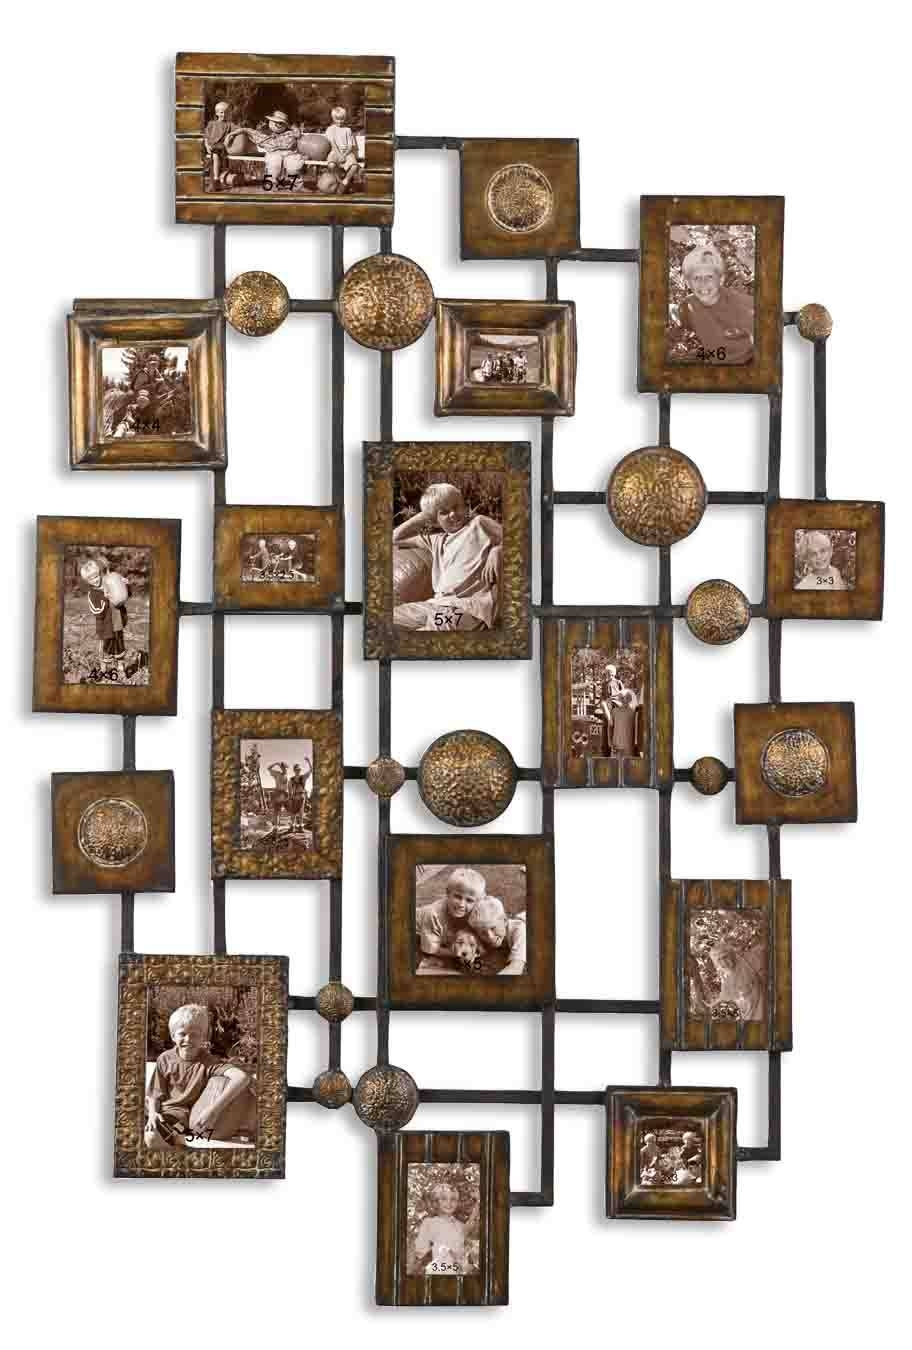 Uttermost Natane Decorative Metal Wall Art 13465 Within Current Uttermost Metal Wall Art (View 13 of 20)